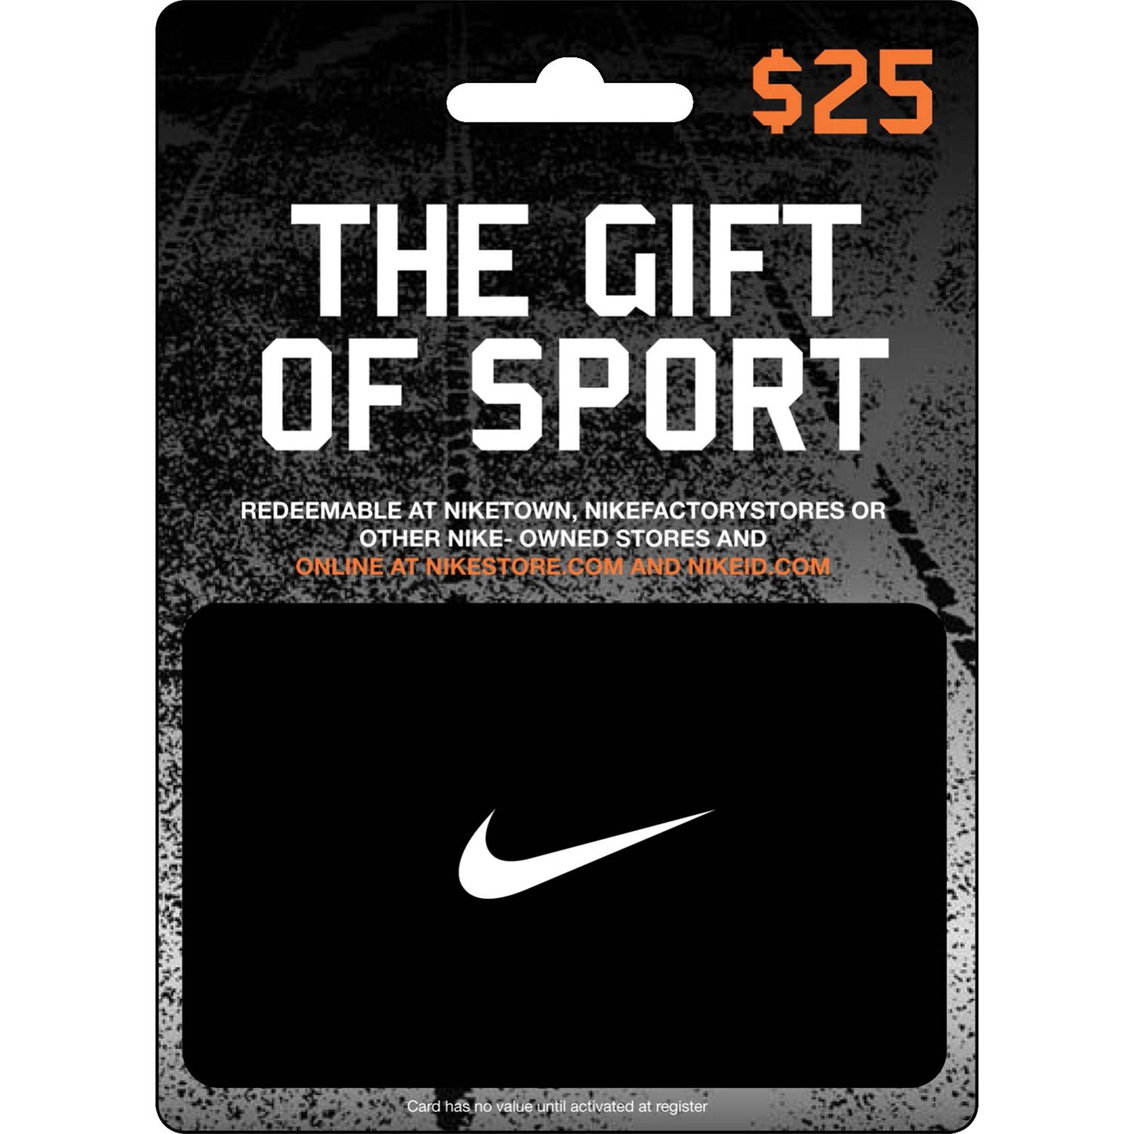 Nike Gift Card | Shoes & Apparel | Gifts & Food | Shop The Exchange